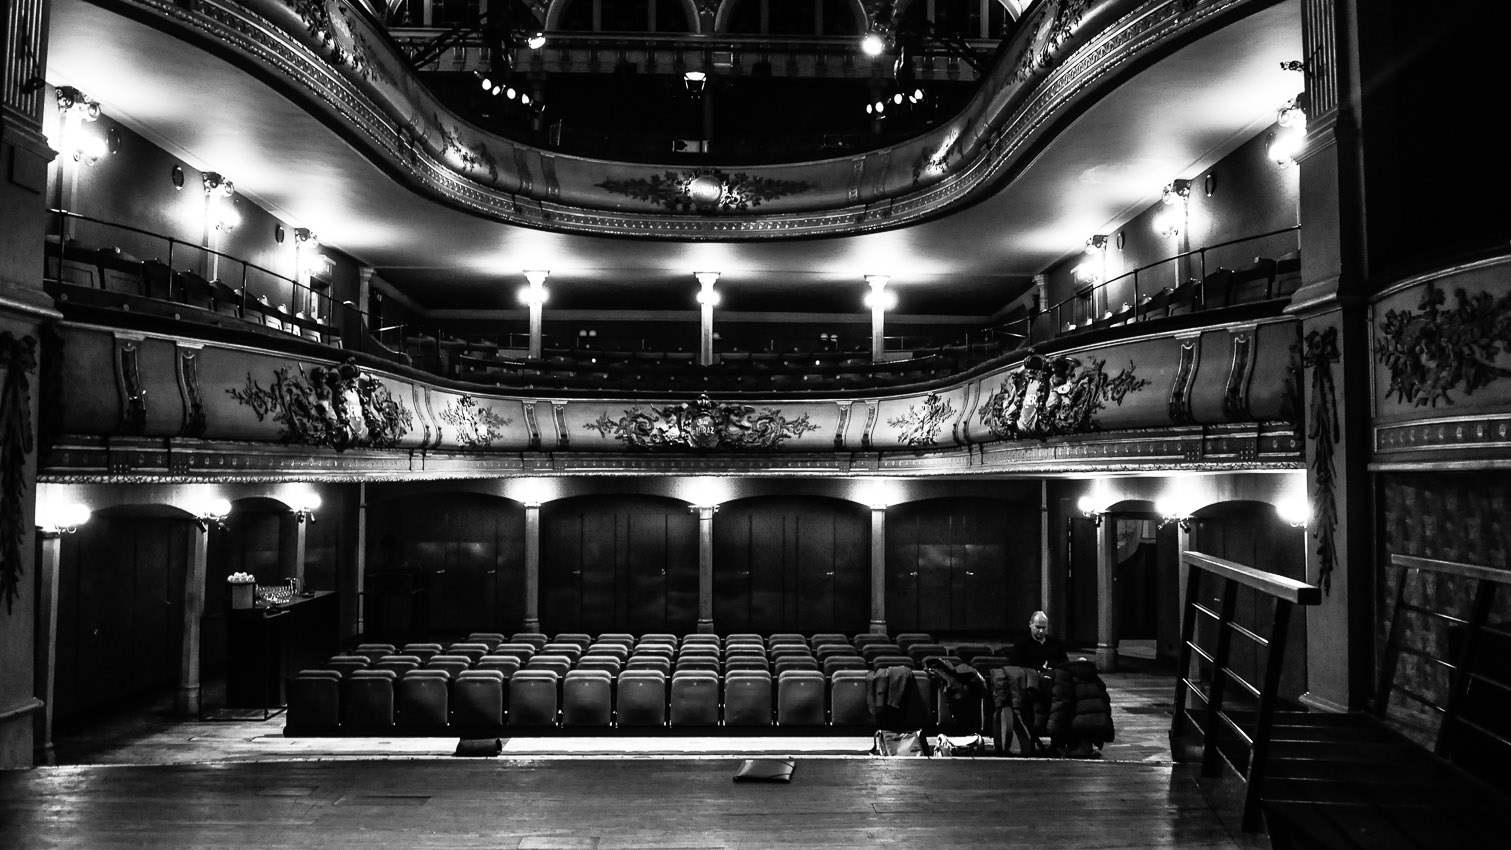 21-salle-theatre-concert-location-decors-film-cinema-photo-belgium-bruxelles